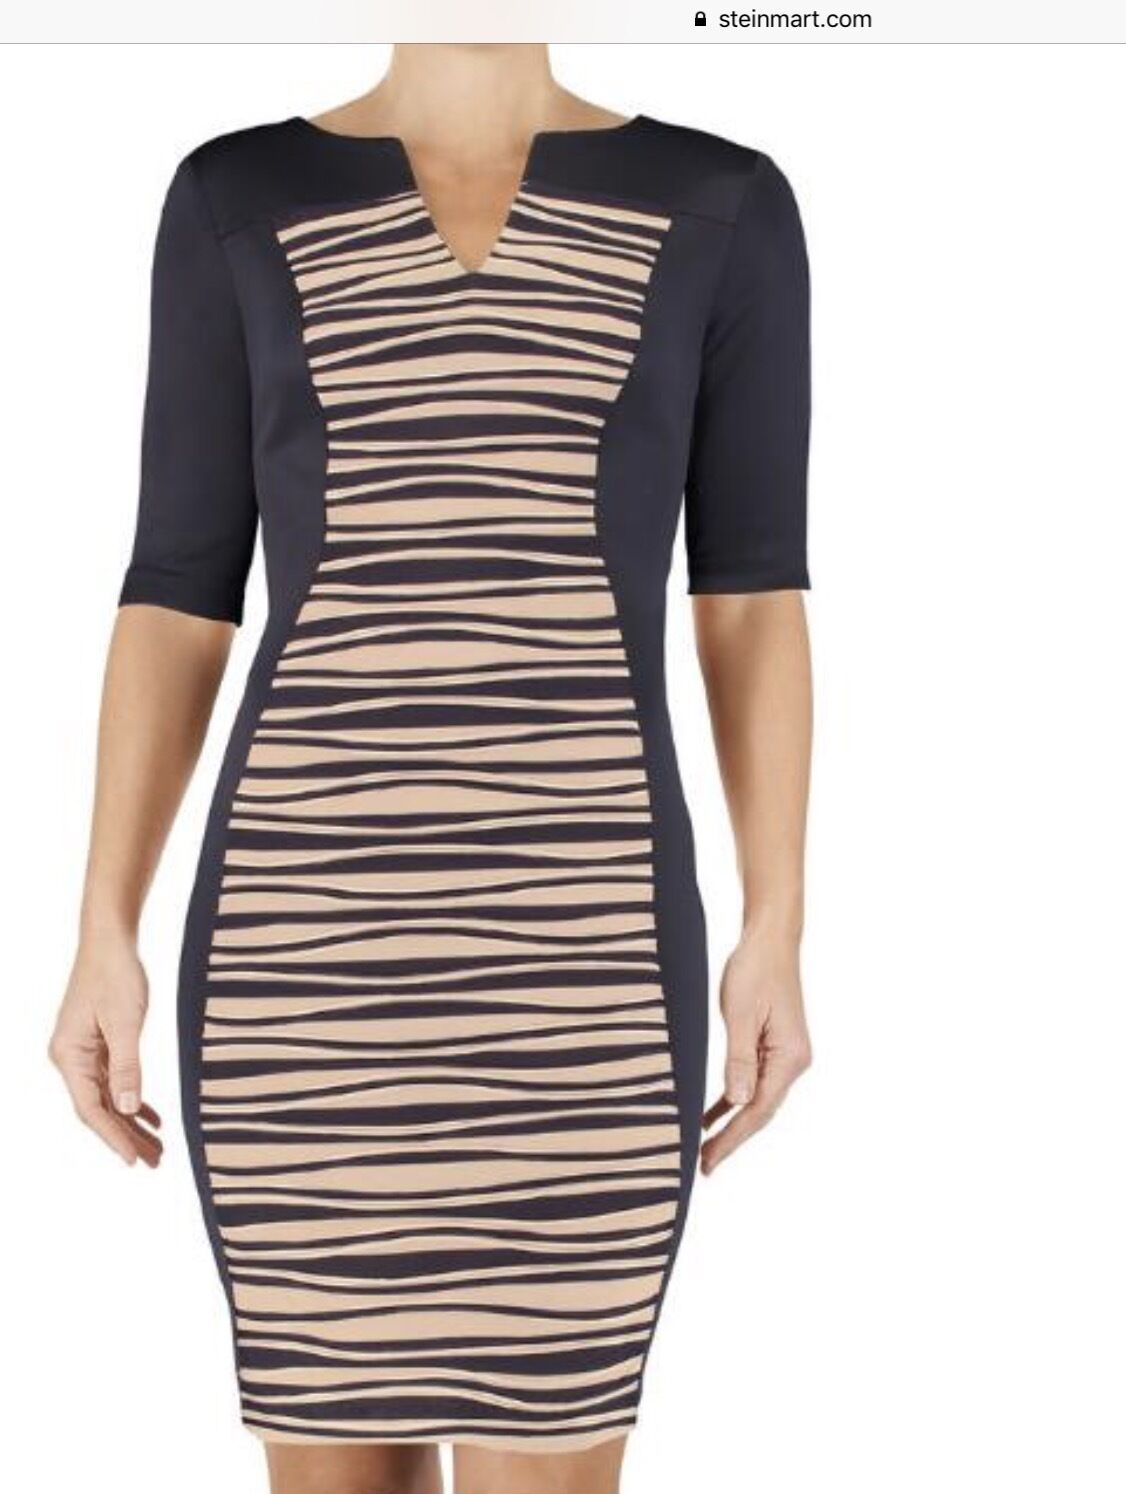 Connected Laser cut Panel Sheath midnight blue with beig insert Dress Size 8 NWT image 4